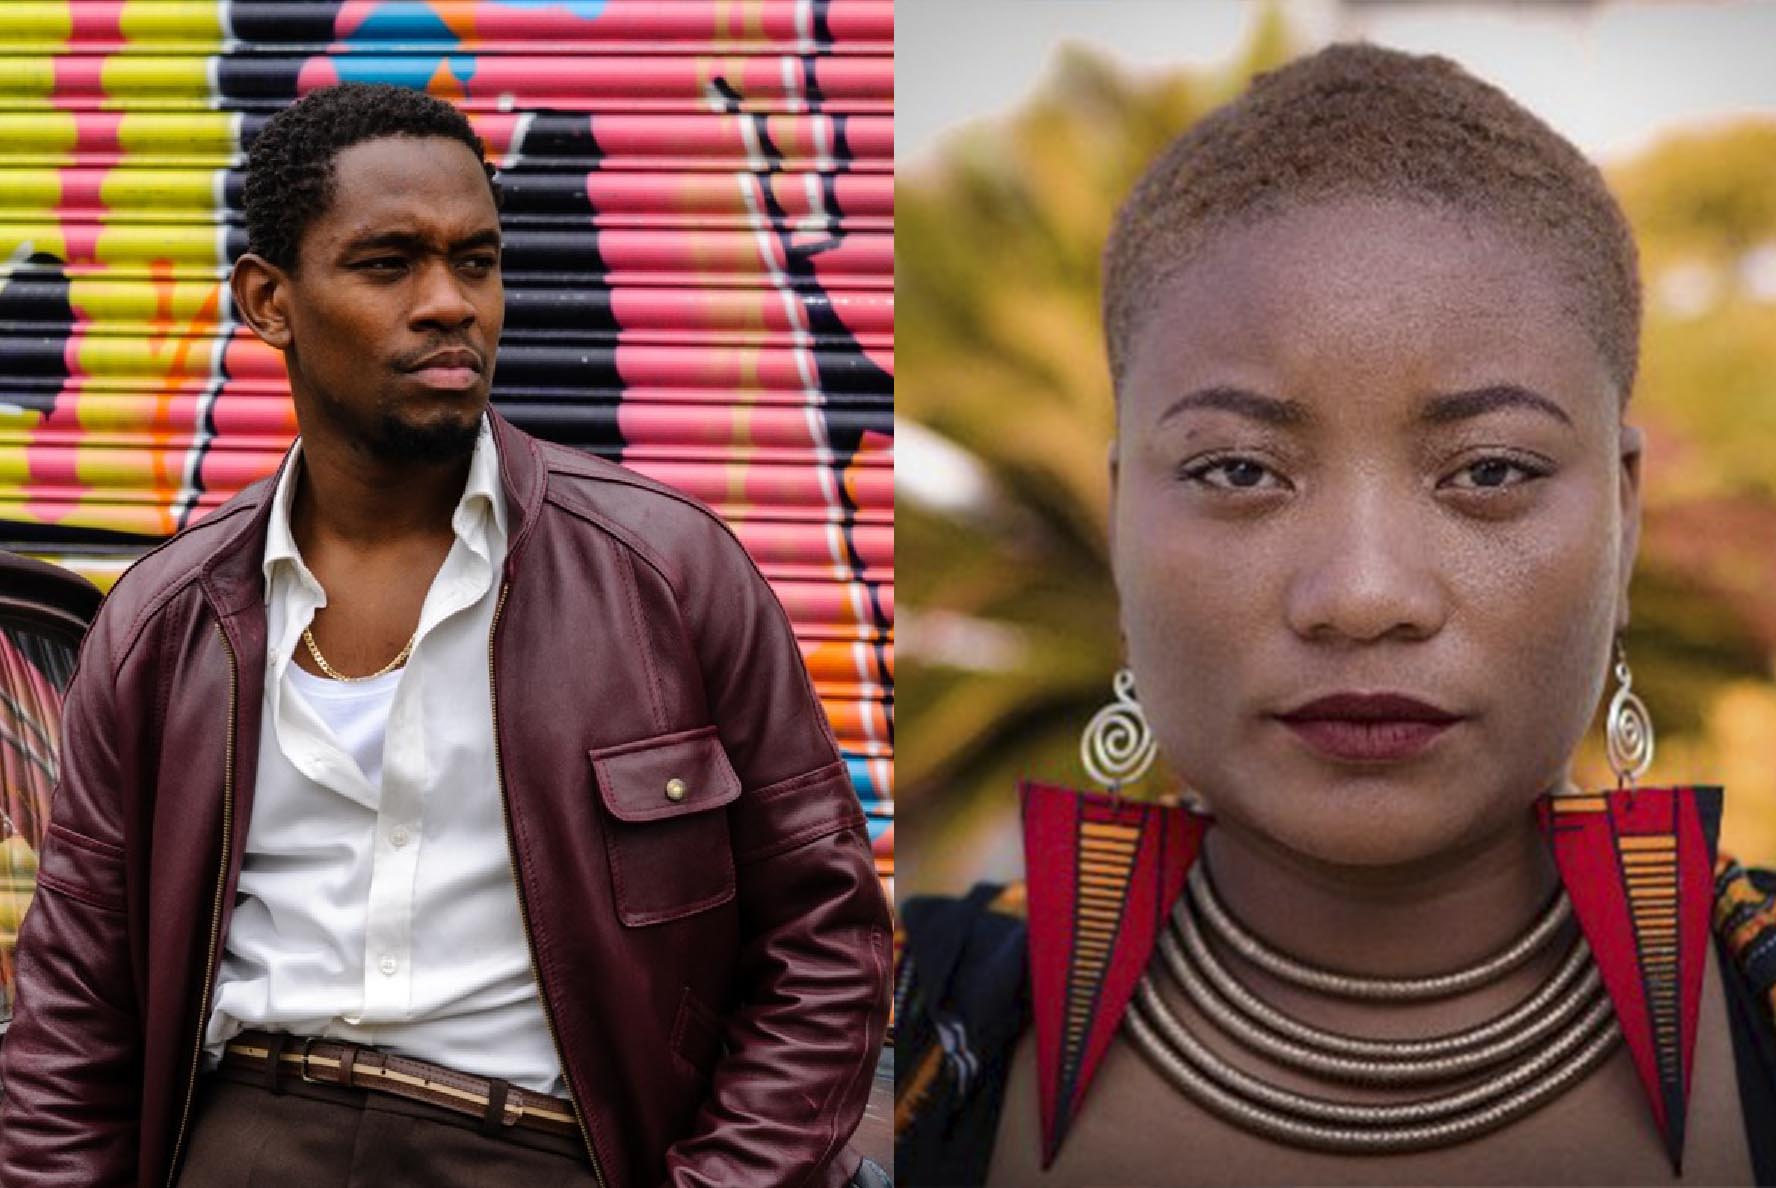 Hairouna Film Lab mentors, Aml Ameen and Michelle Serieux